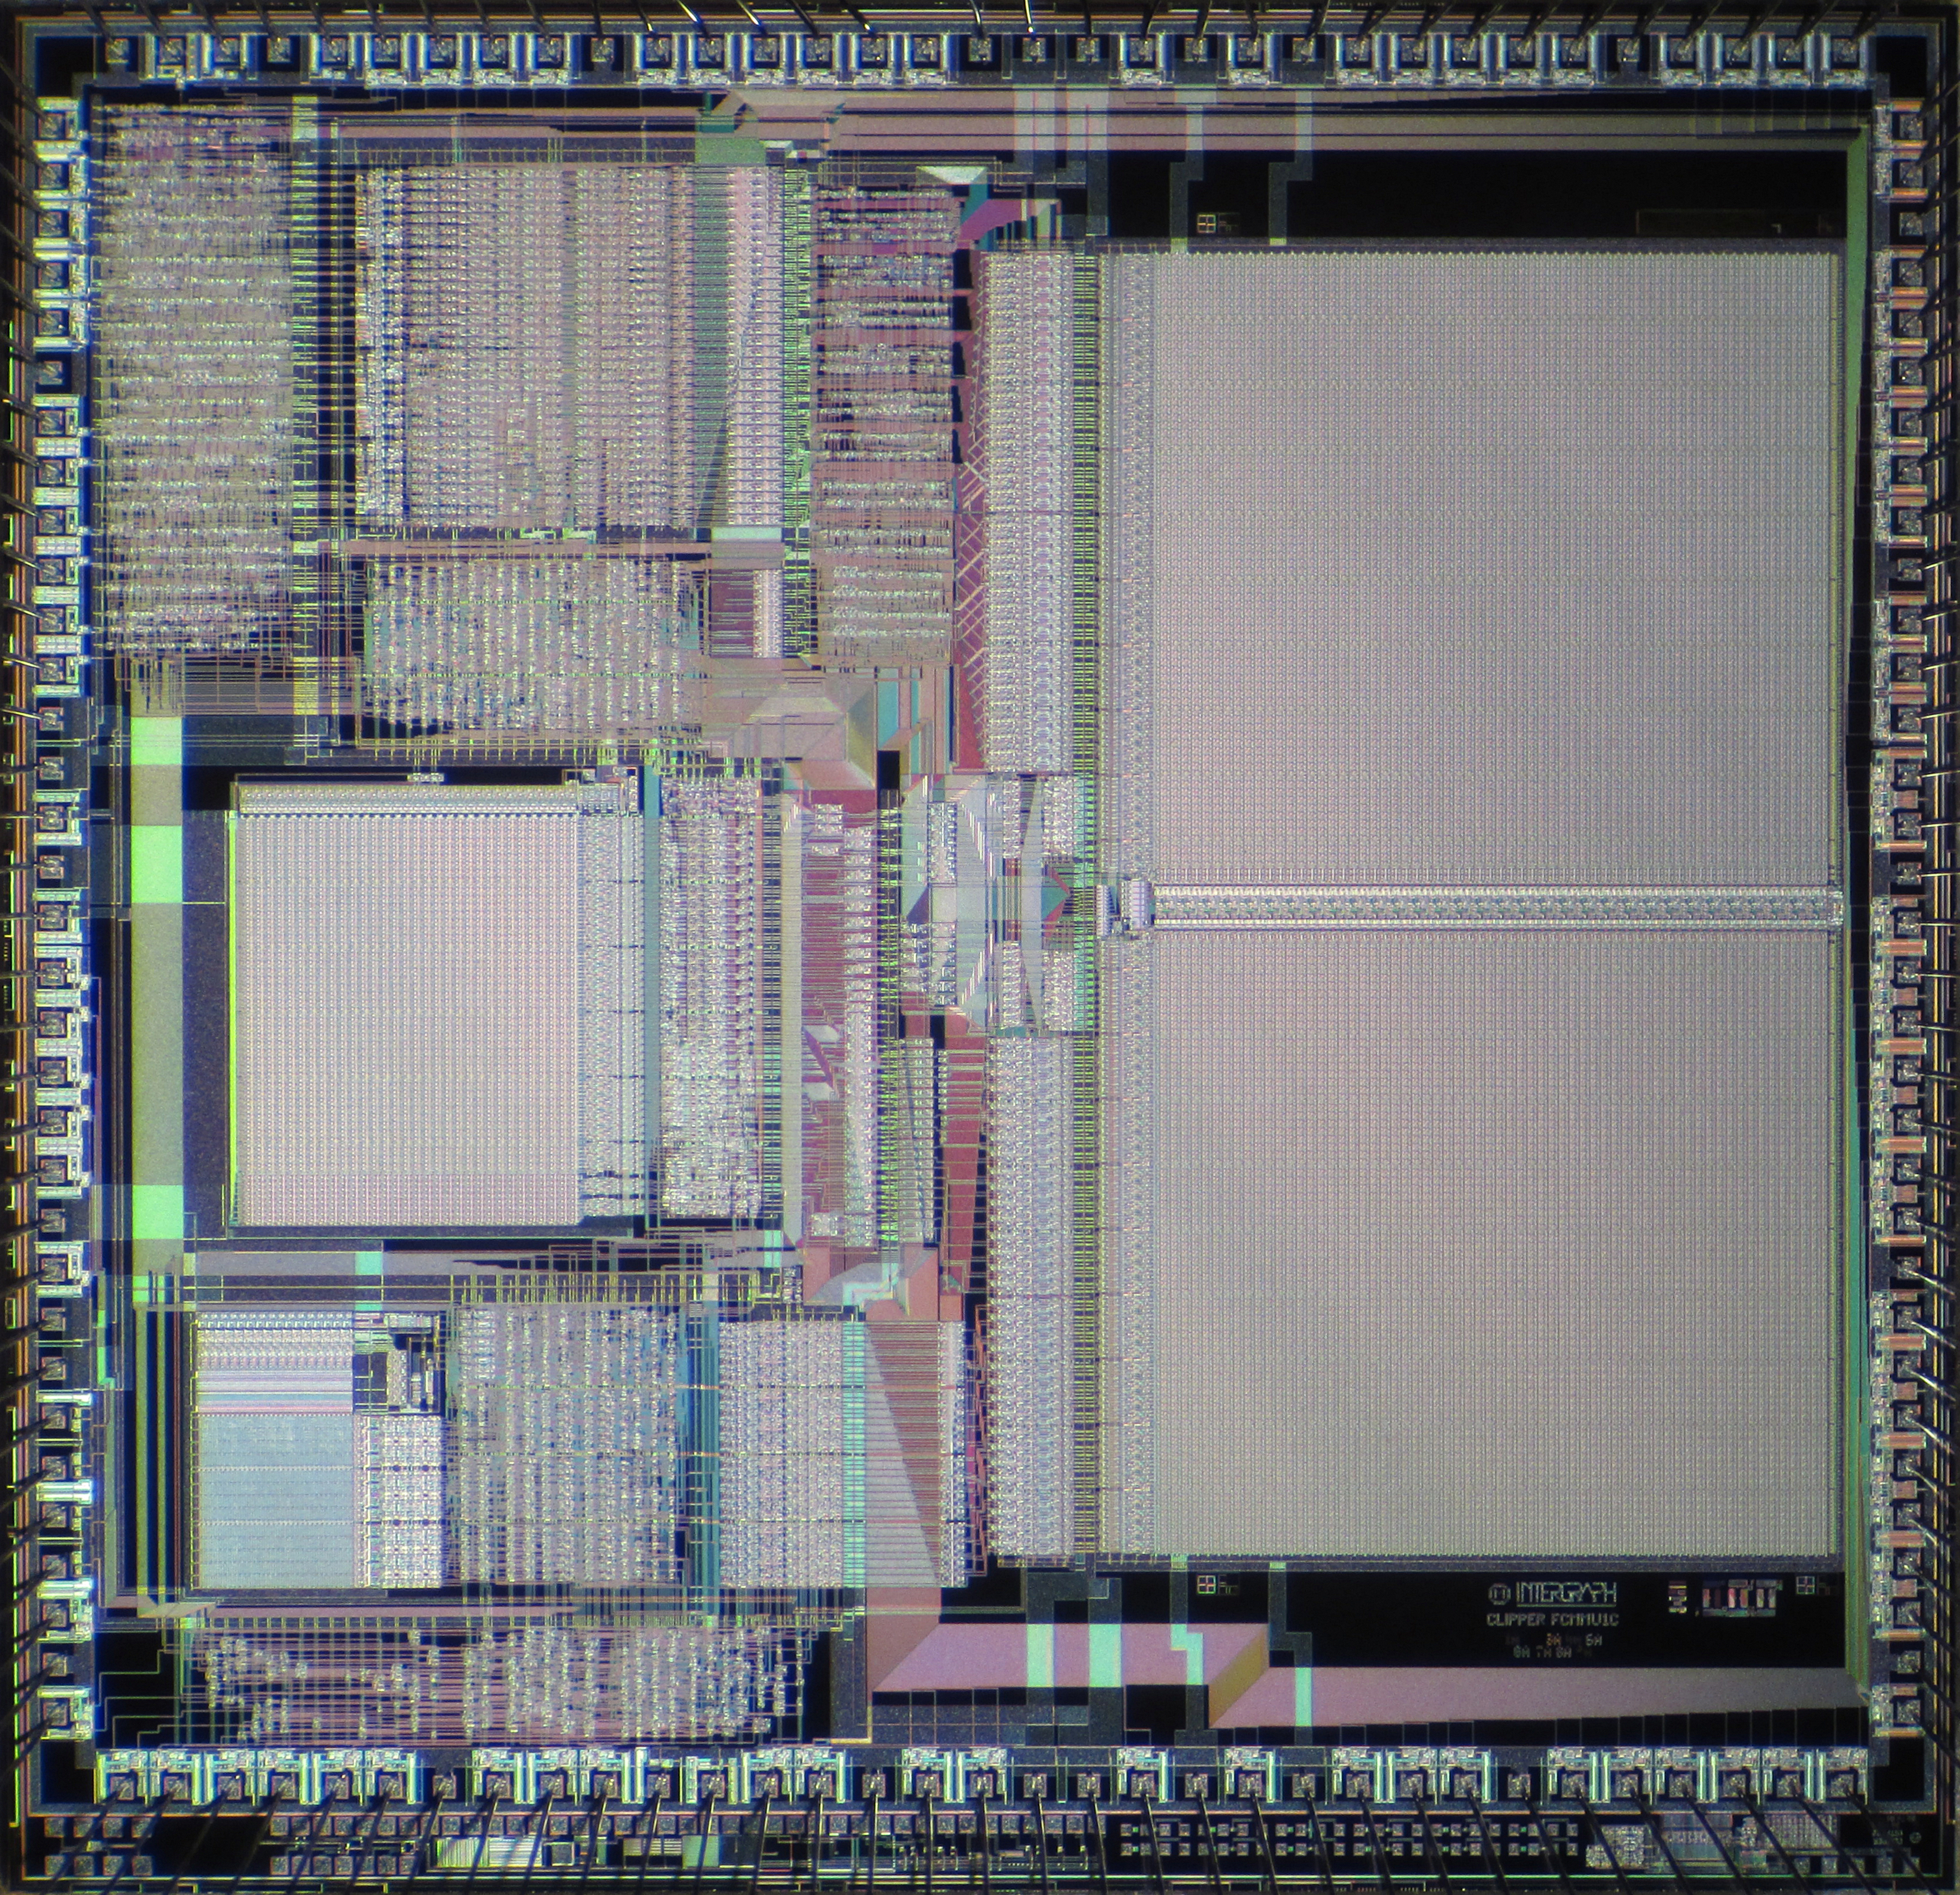 Fileintergraph Clipper C300 Cammu Die Wikimedia Commons Clippers An Overview Of Clipping Circuits Electronic